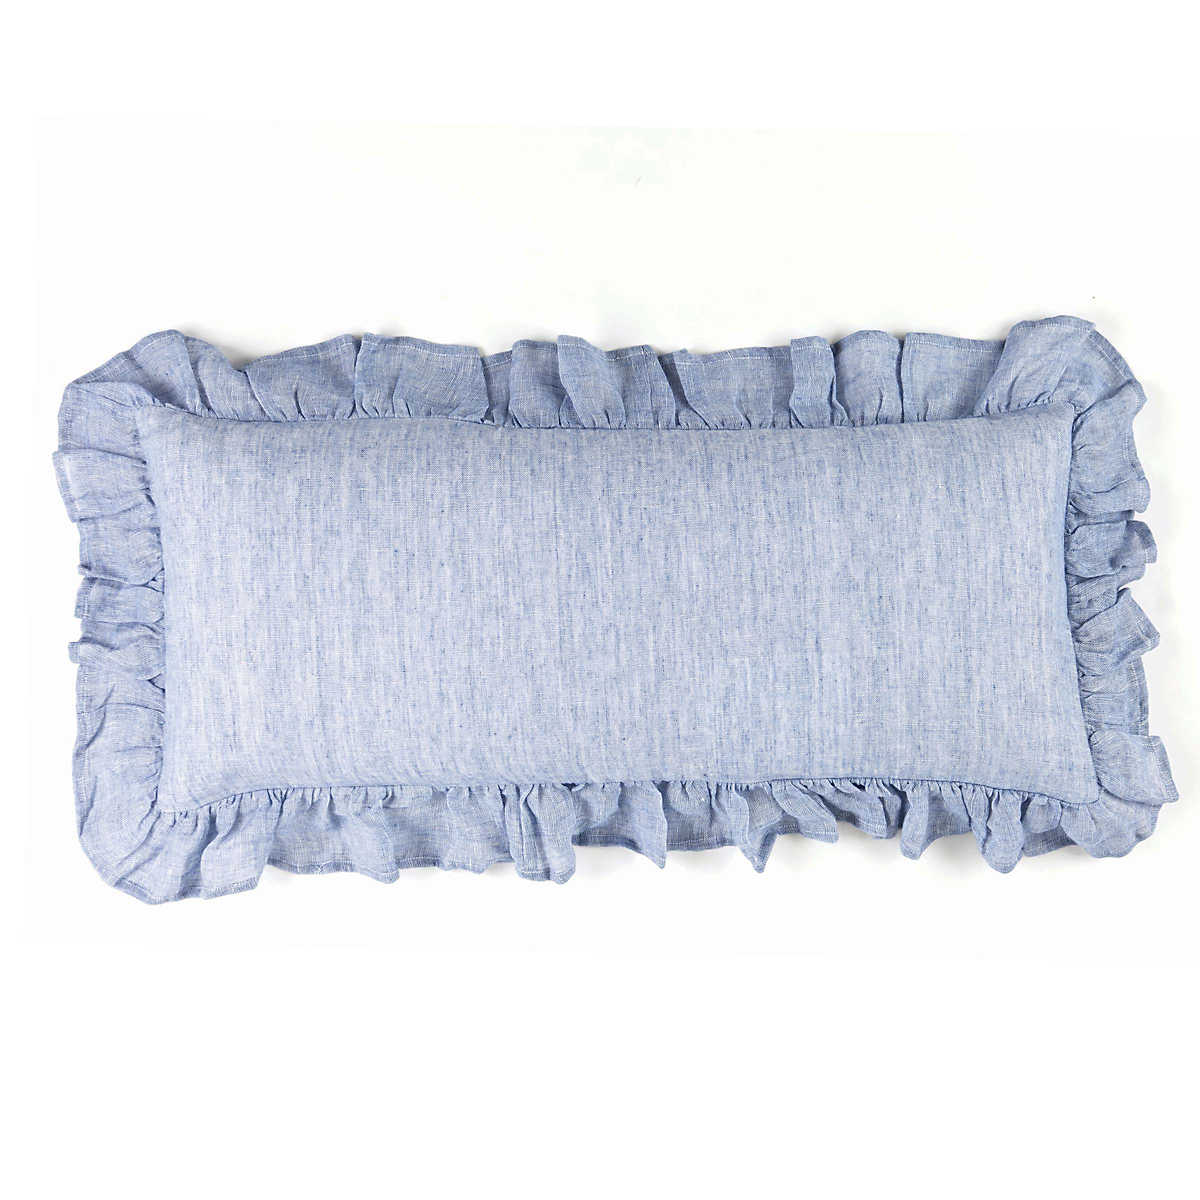 Savannah Linen Chambray French Blue Decorative Pillow Pine Cone Hill